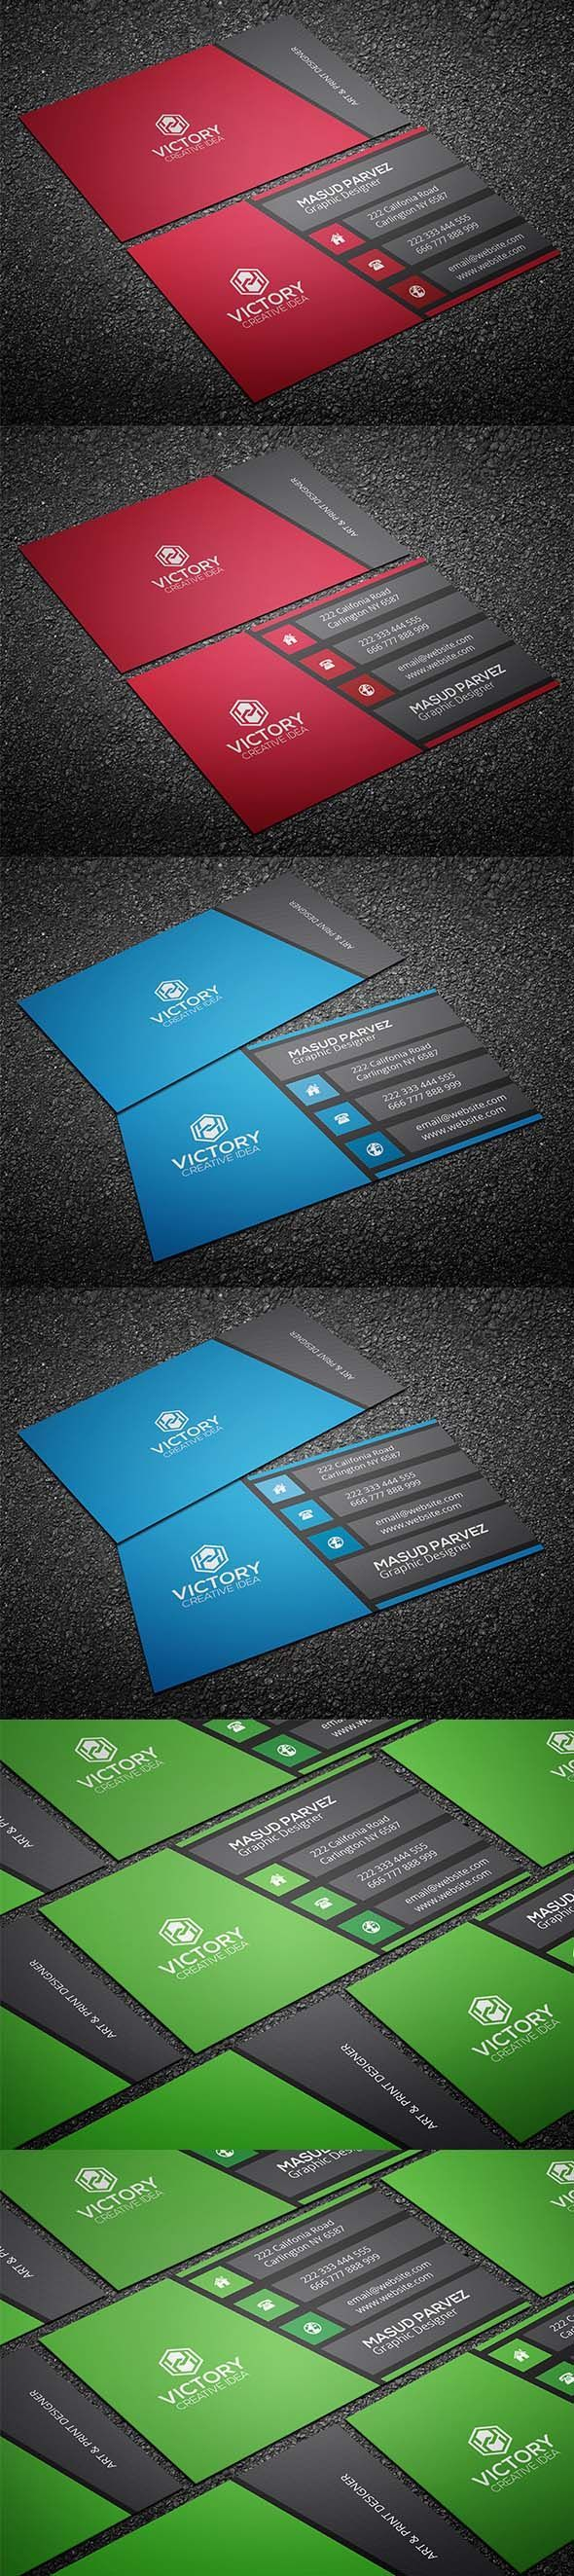 Best format for business cards images free business cards best 25 free printable business cards ideas on pinterest heres collection of free printable templates for magicingreecefo Gallery